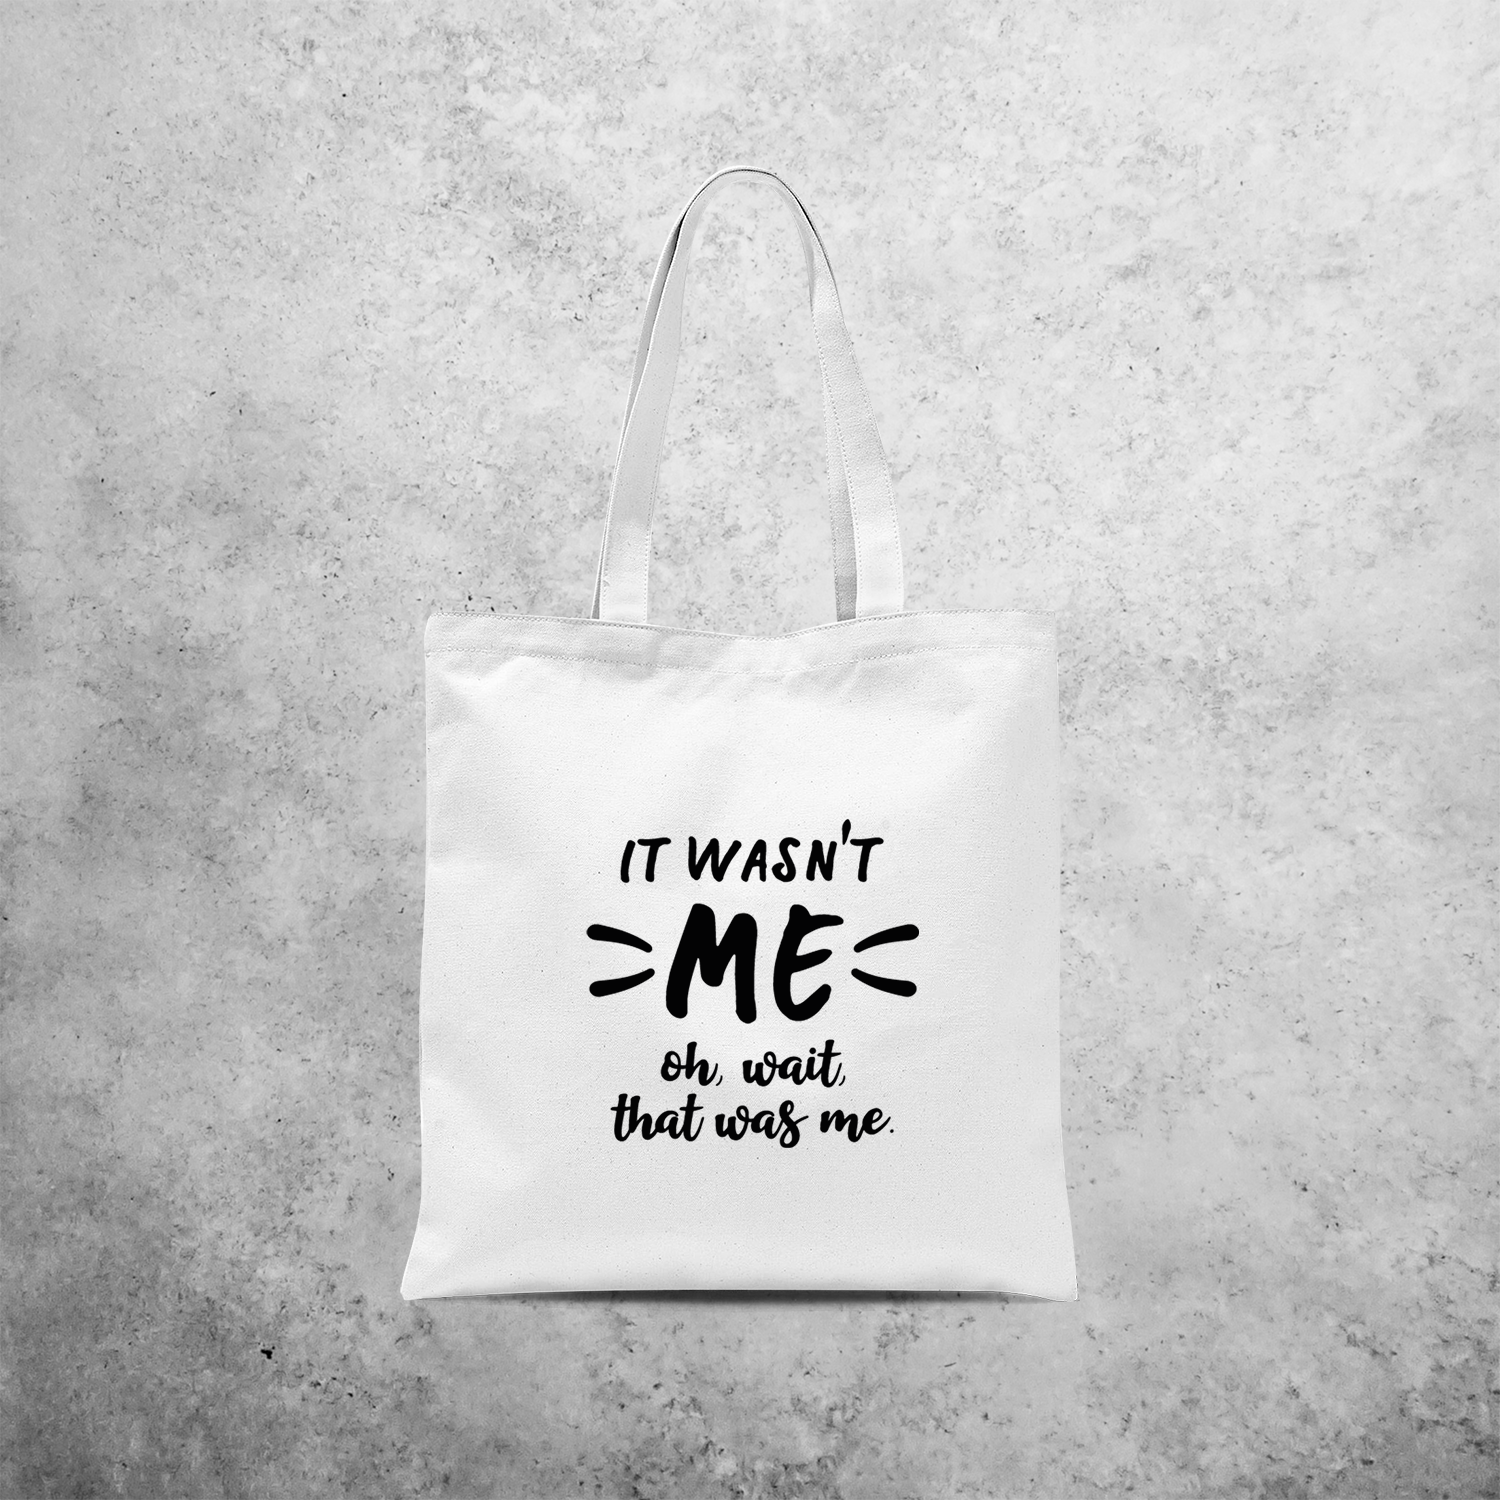 'It wasn't me - Oh, wait, that was me.' tote bag